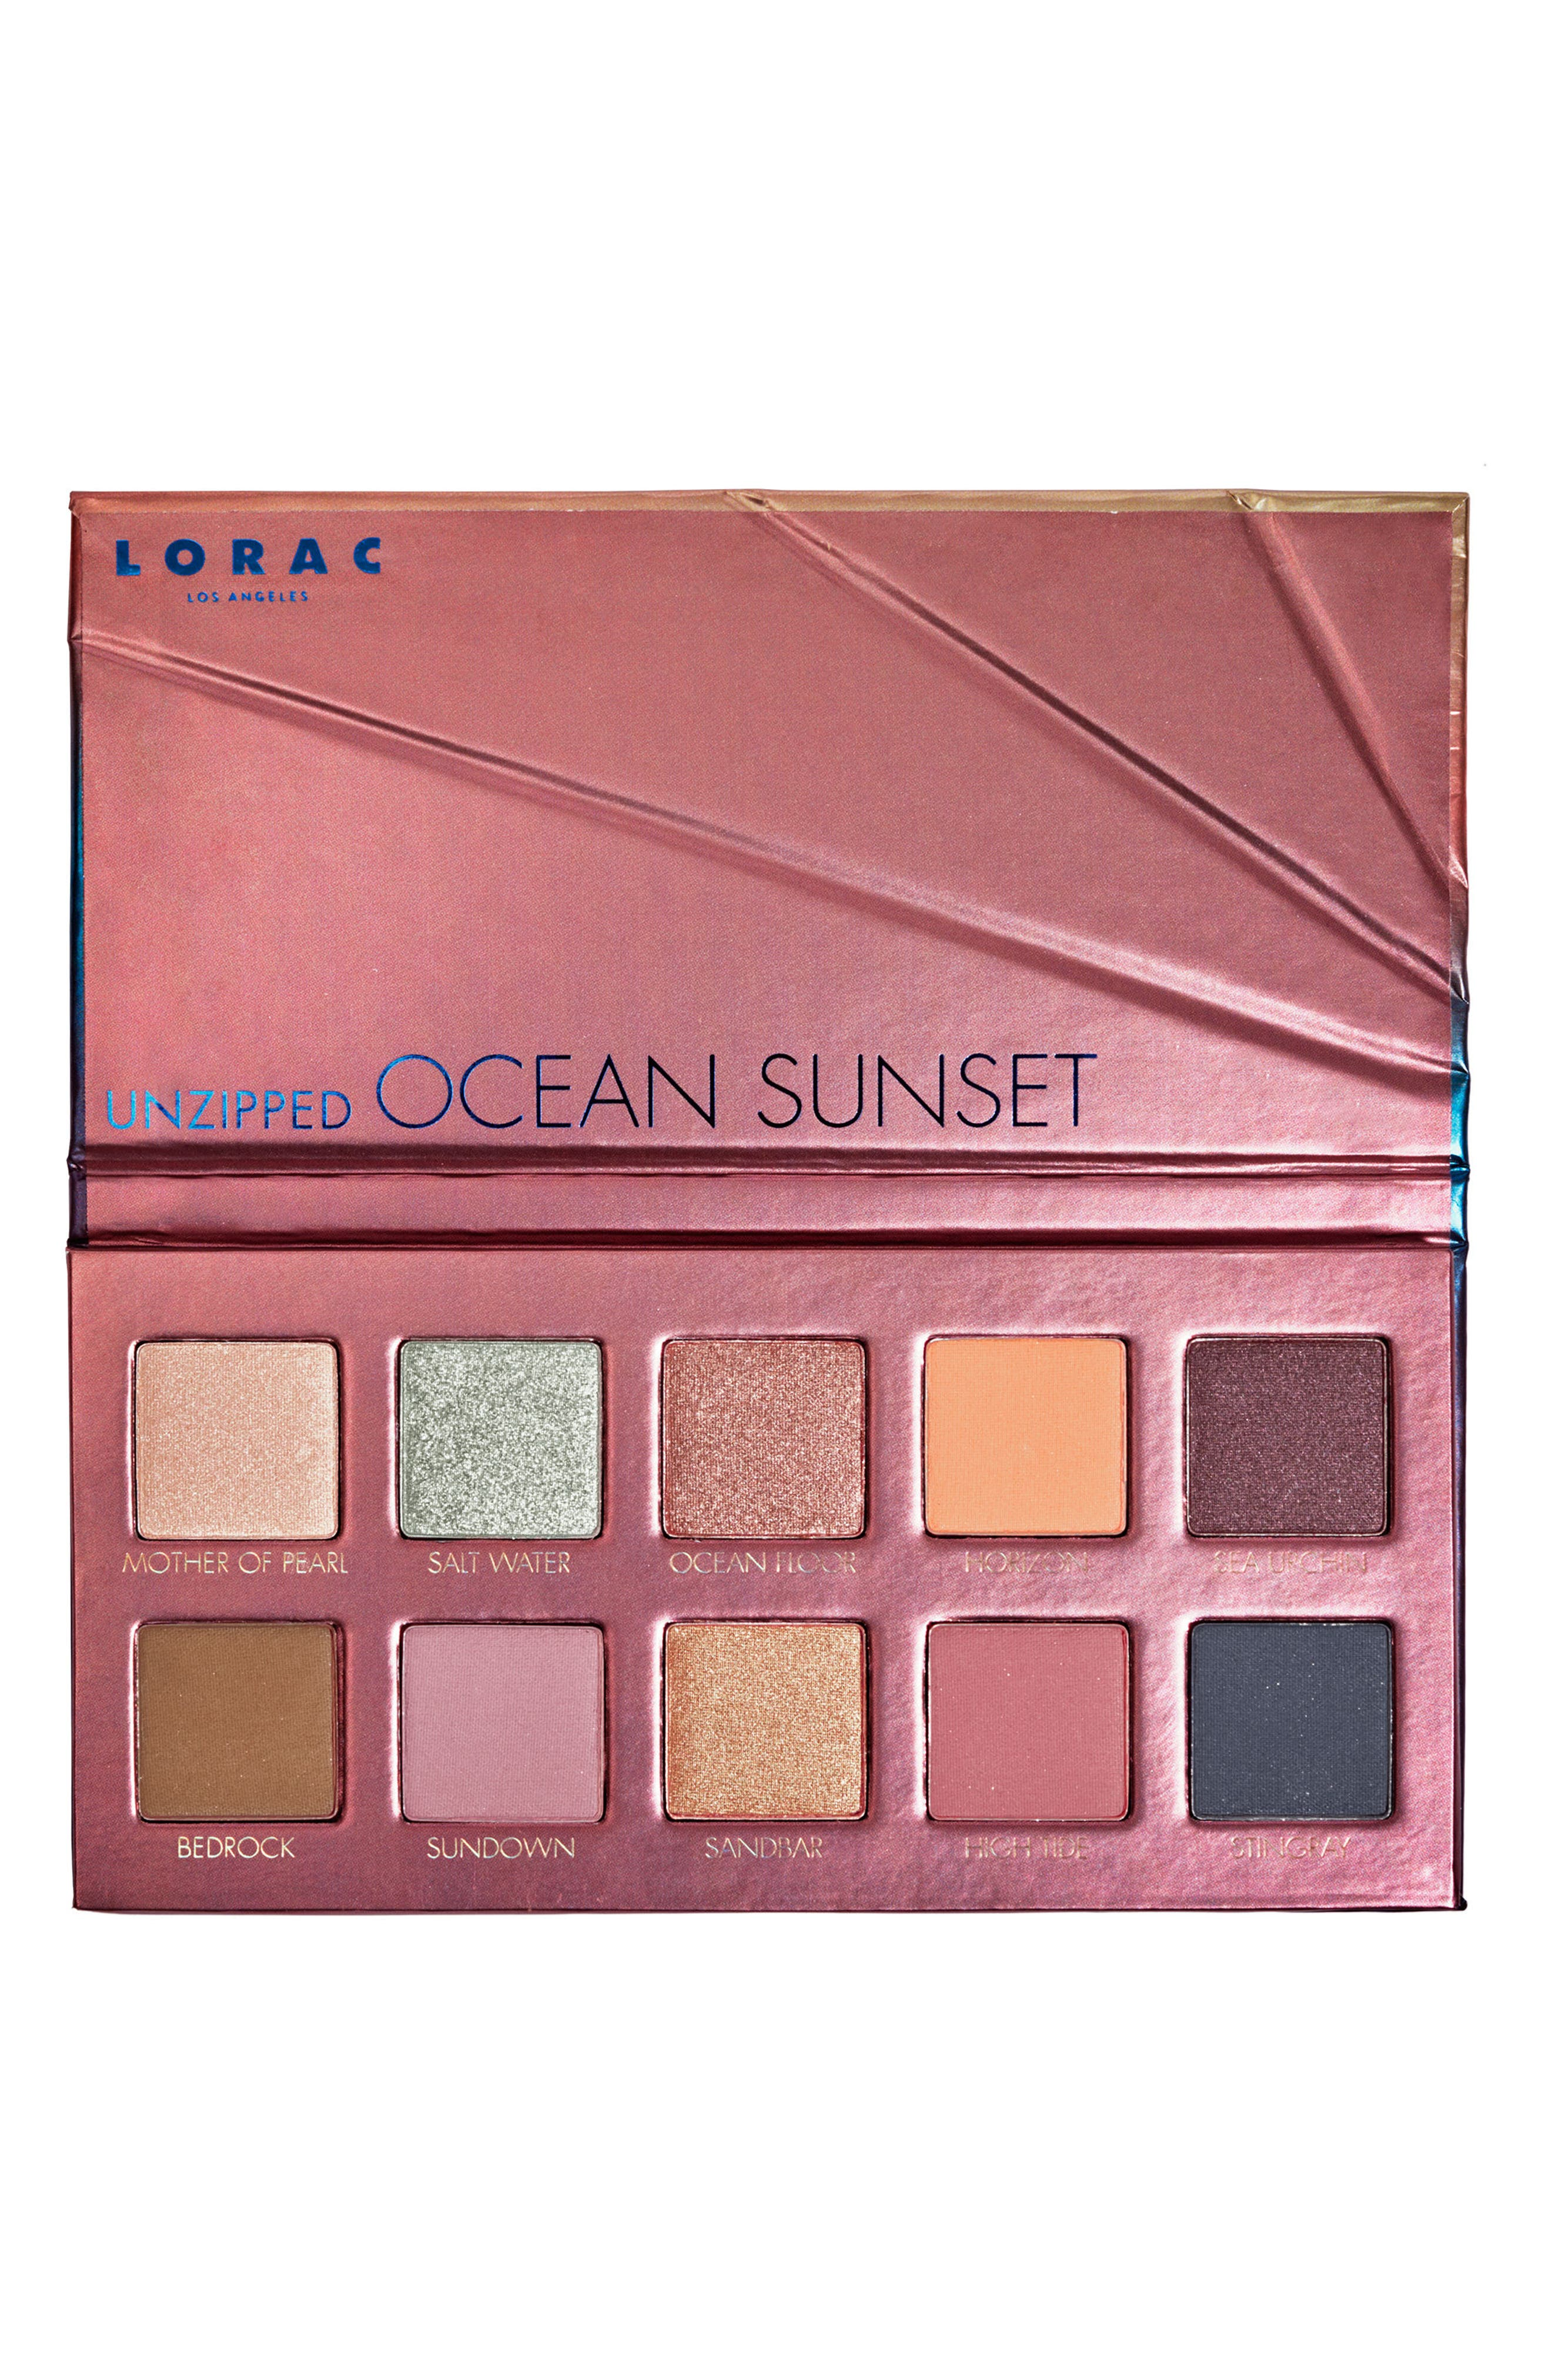 LORAC Unzipped Ocean Sunset Eyeshadow Palette (Limited Edition)